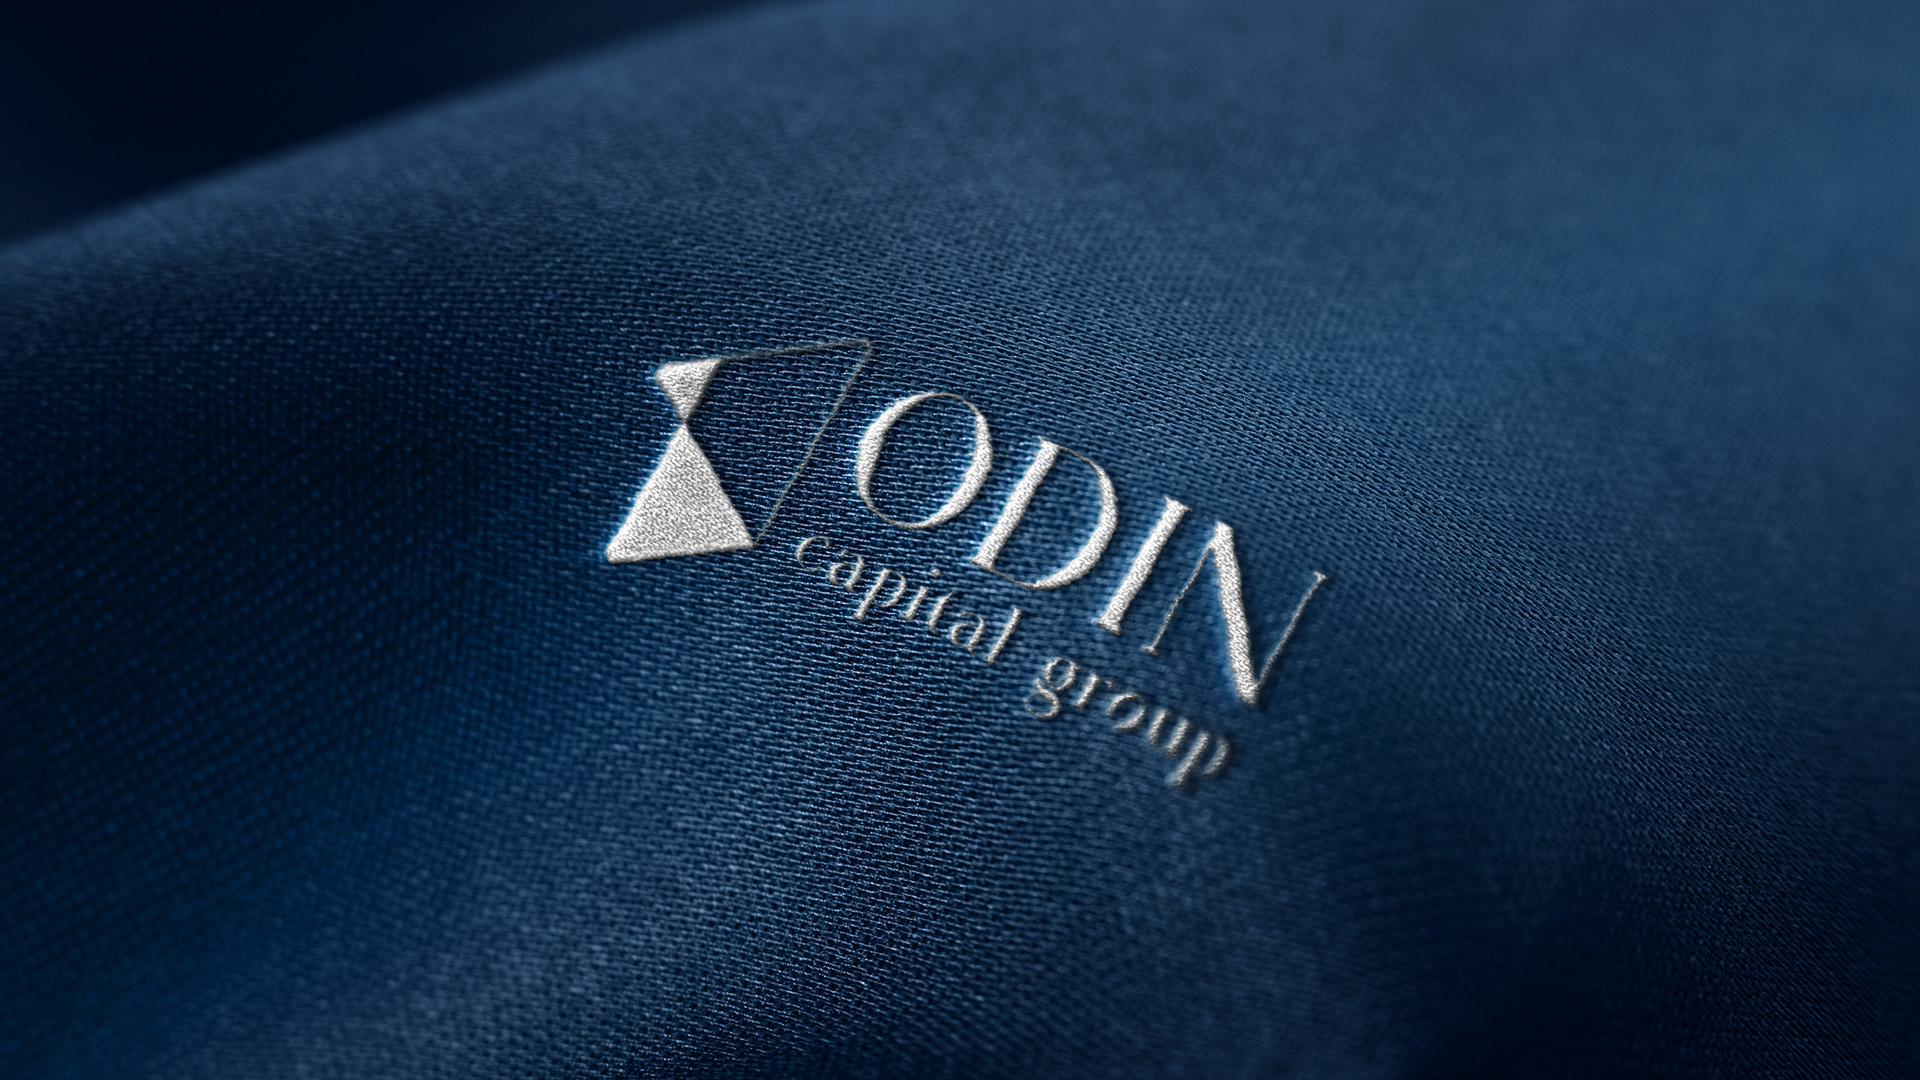 ODIN Capital Group